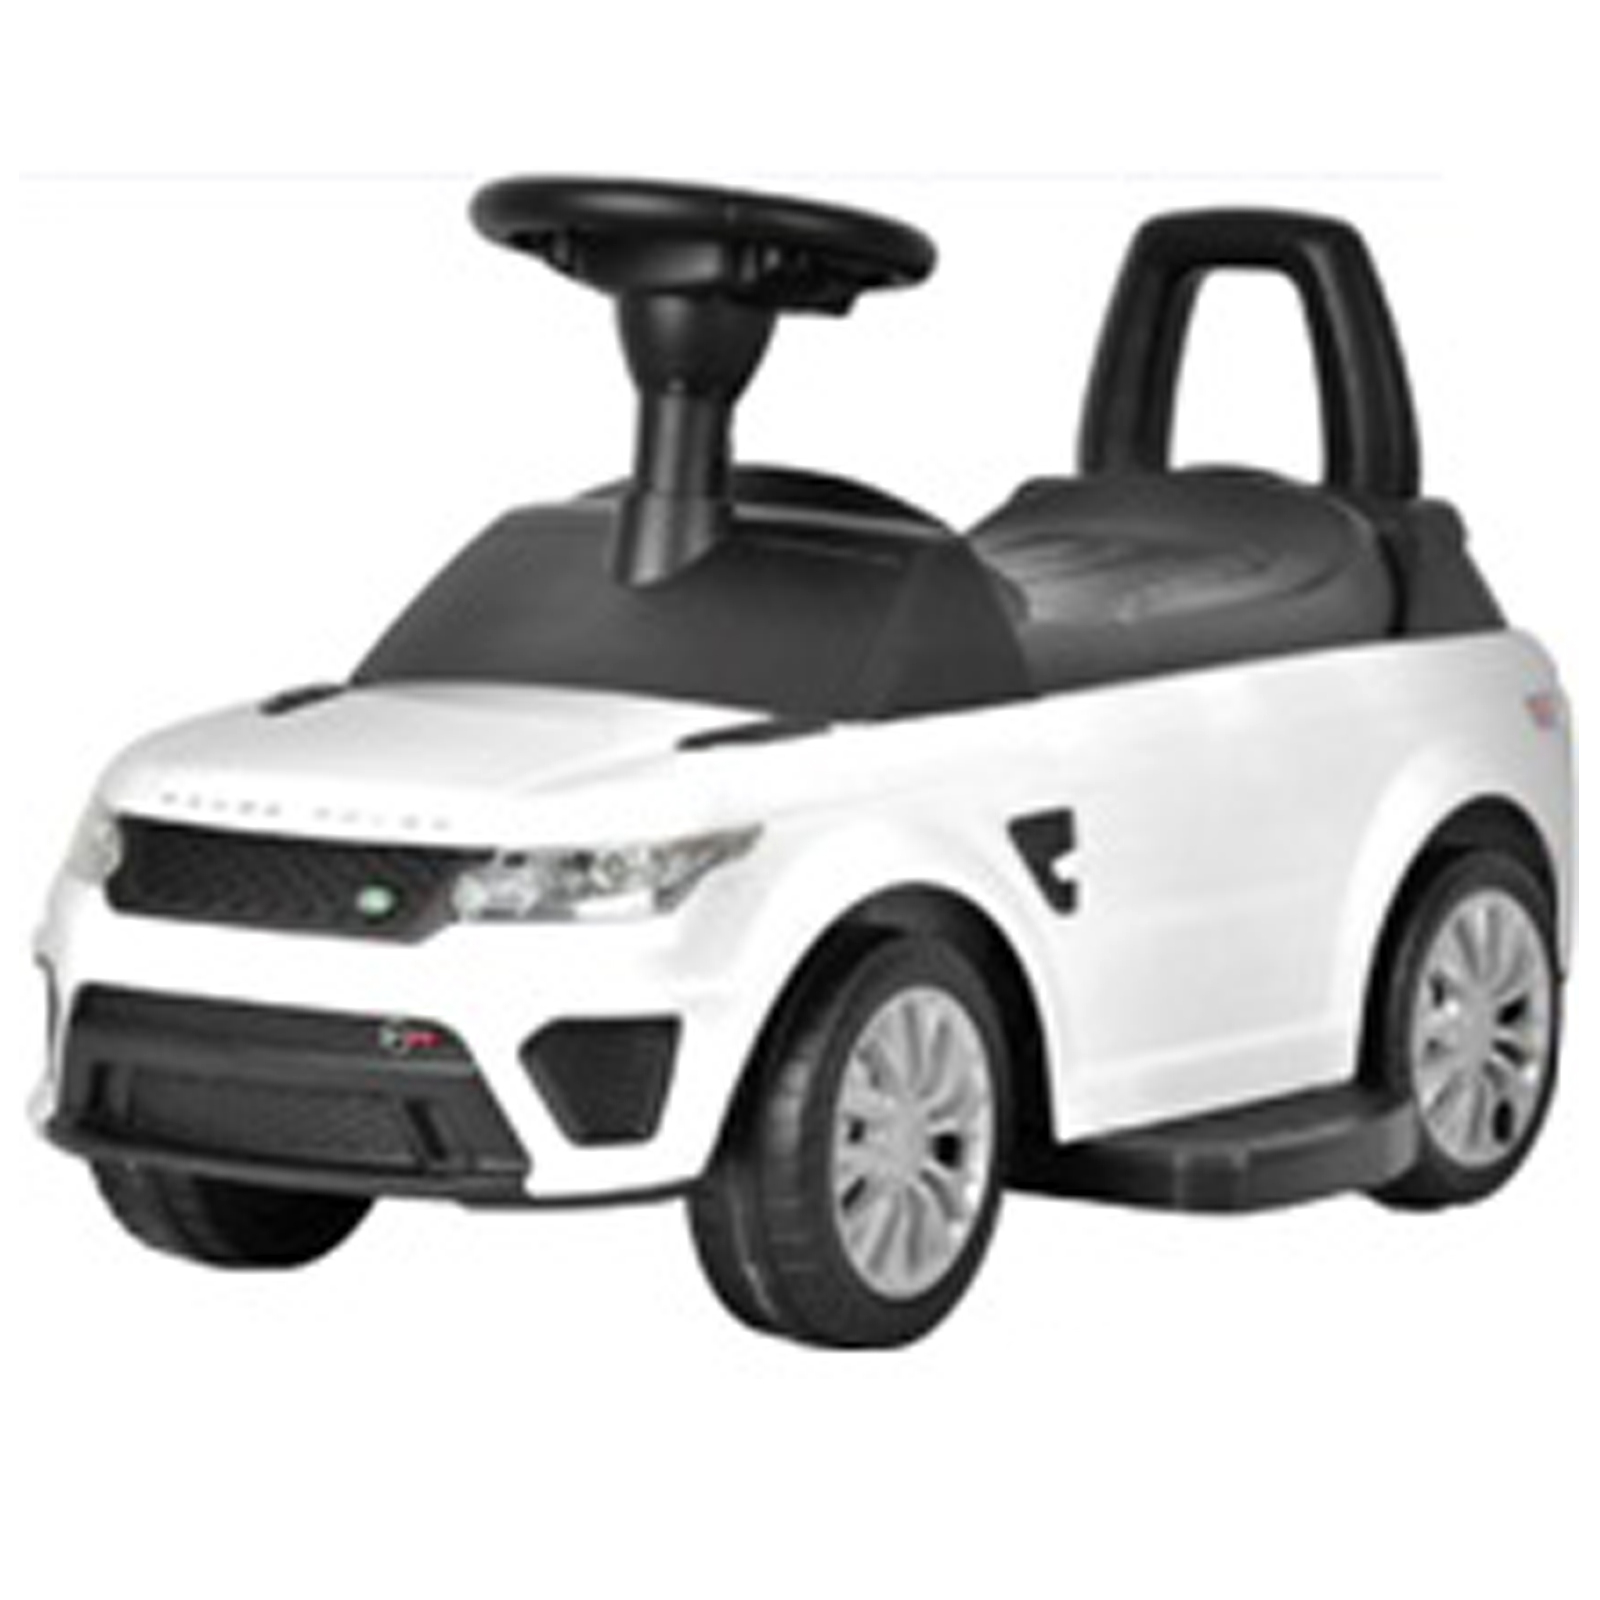 Licensed Range Rover Sport SVR Kids Ride On Car Battery Powered 6V - White